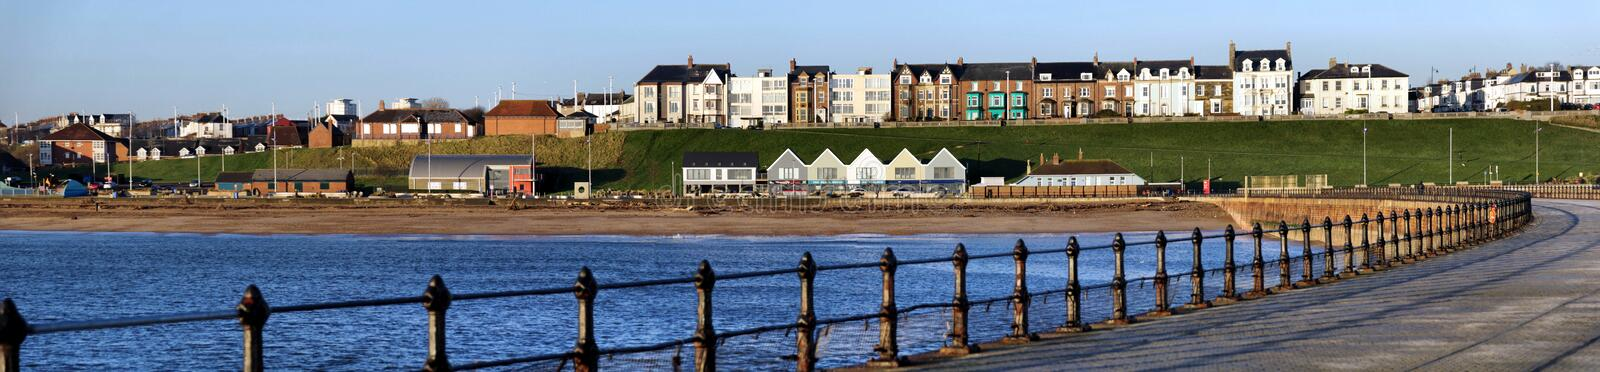 Roker Seafront from Pier royalty free stock photography